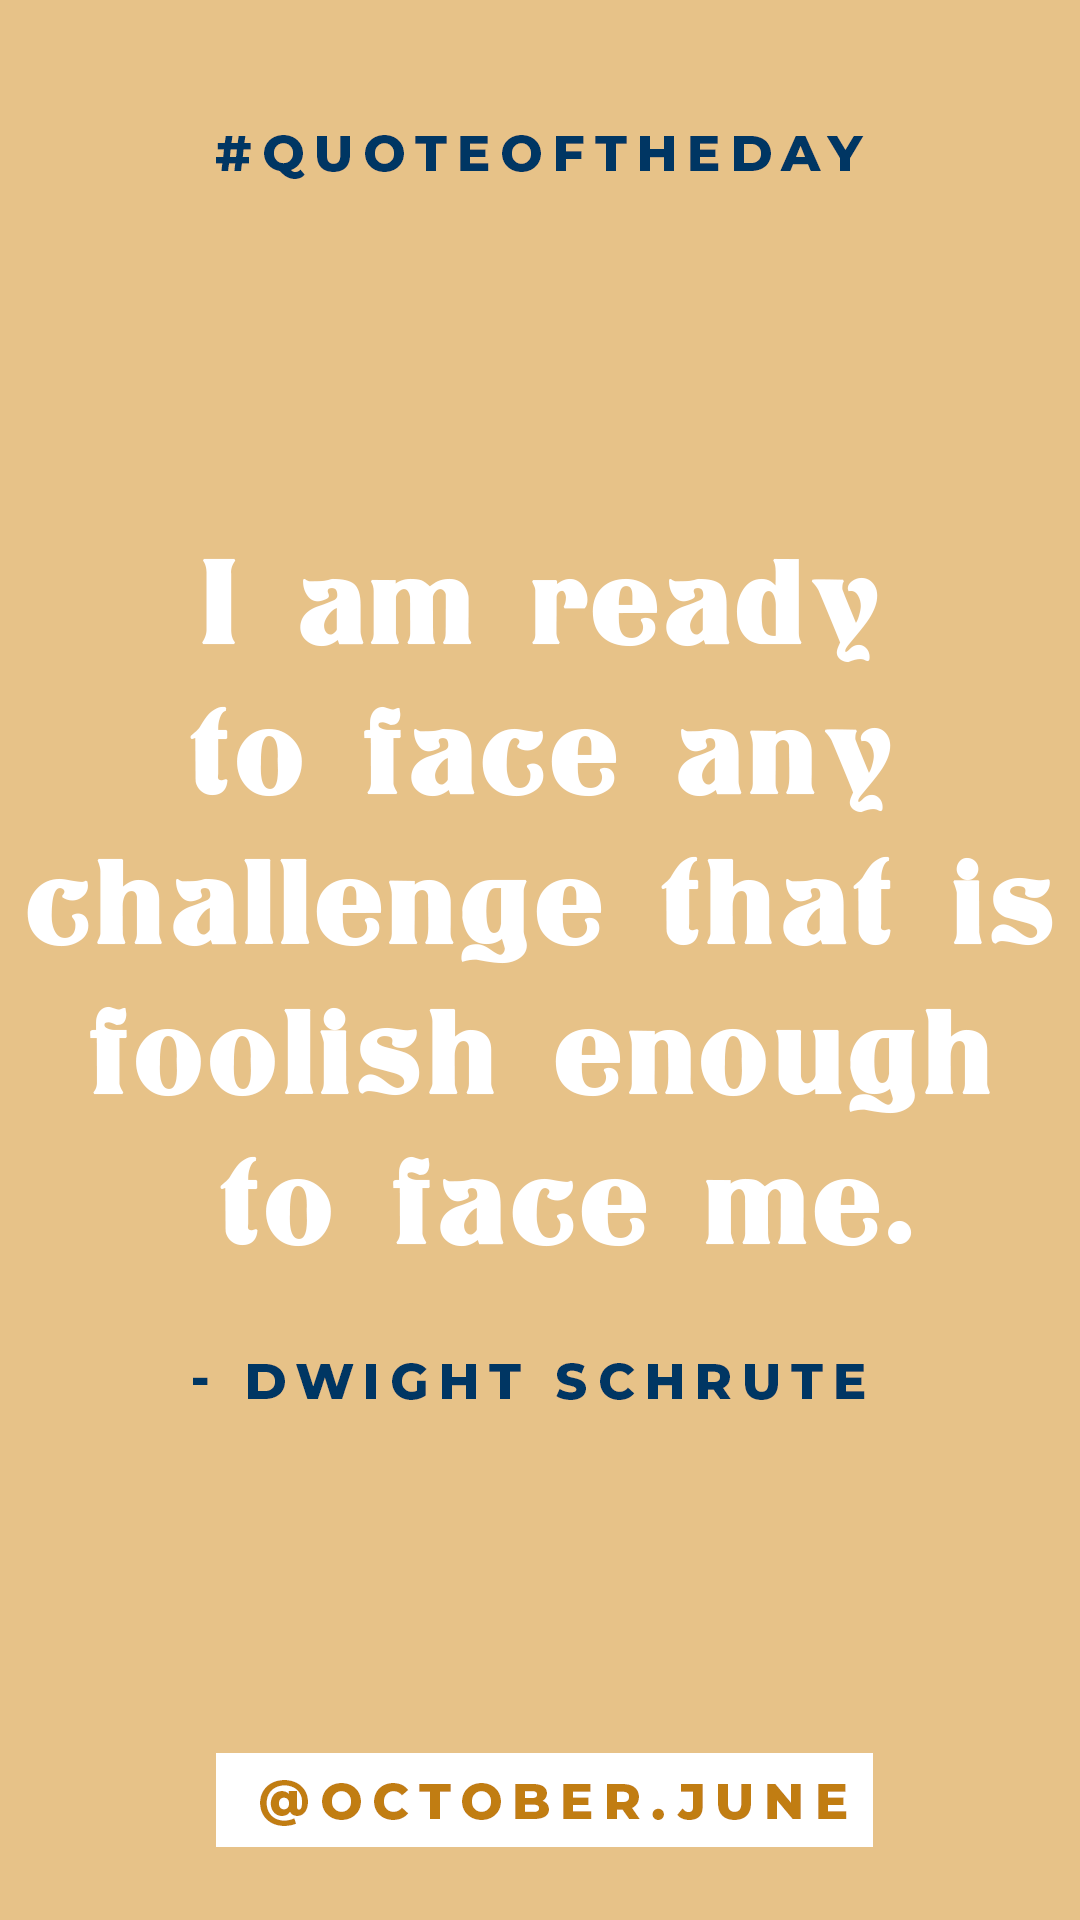 Dwight Schrute The Office Inspirational Quotes Inspirational Office Quotes Office Quotes Office Quotes Funny